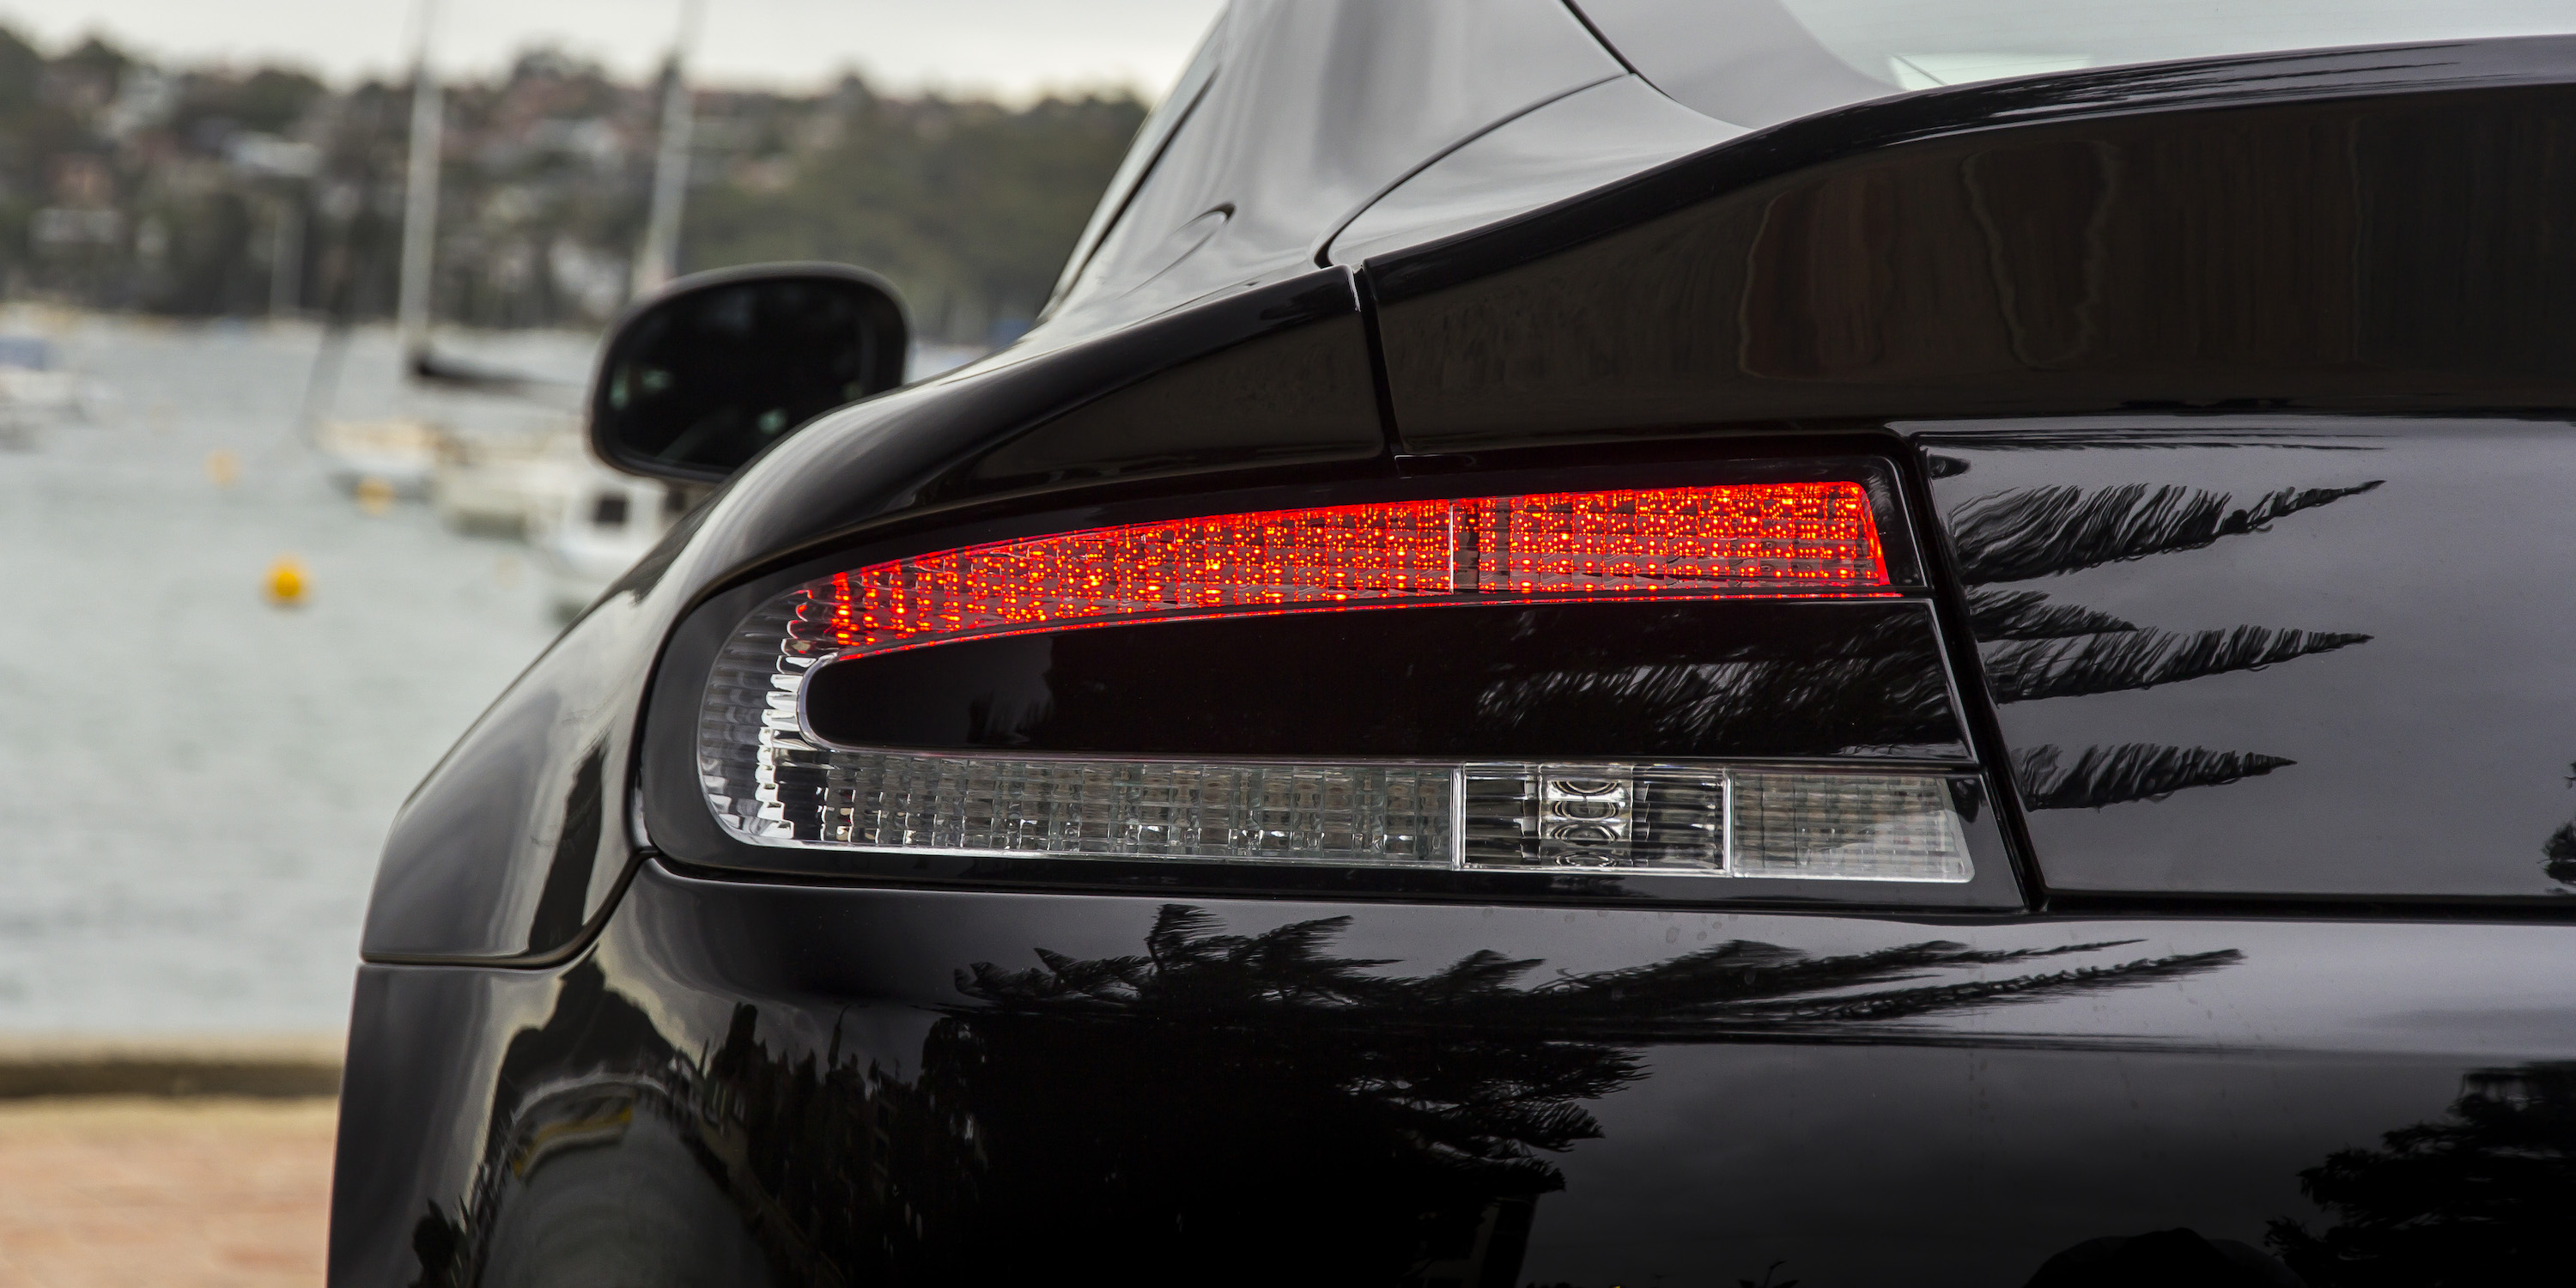 2016 Aston Martin Vantage Gt Left Taillight (View 5 of 25)